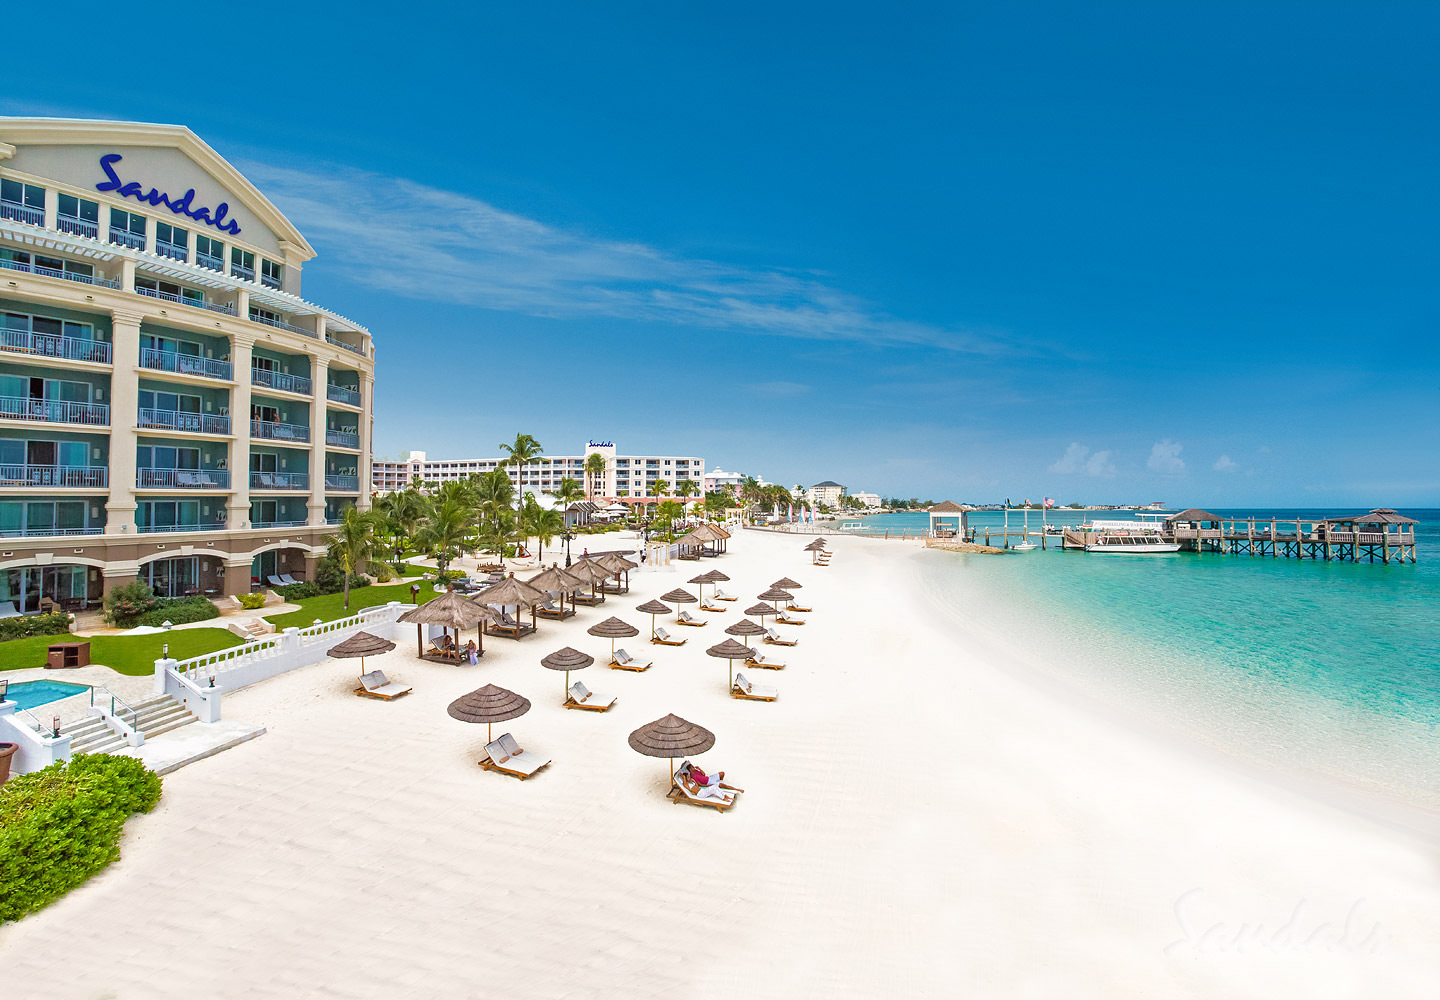 Travel Agency All-Inclusive Resort Sandals Royal Bahamian 008